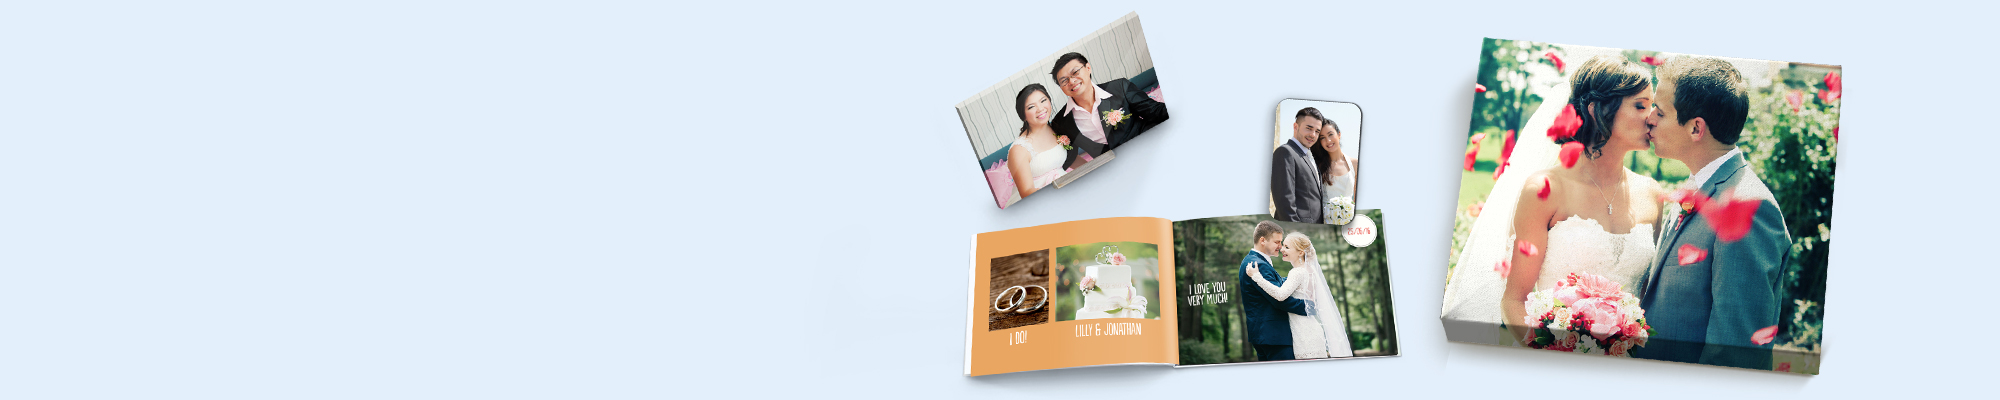 Weddings Make every memory count and create personalised wedding gifts and keep sakes with our stunning photo books, canvas prints, gifts and more